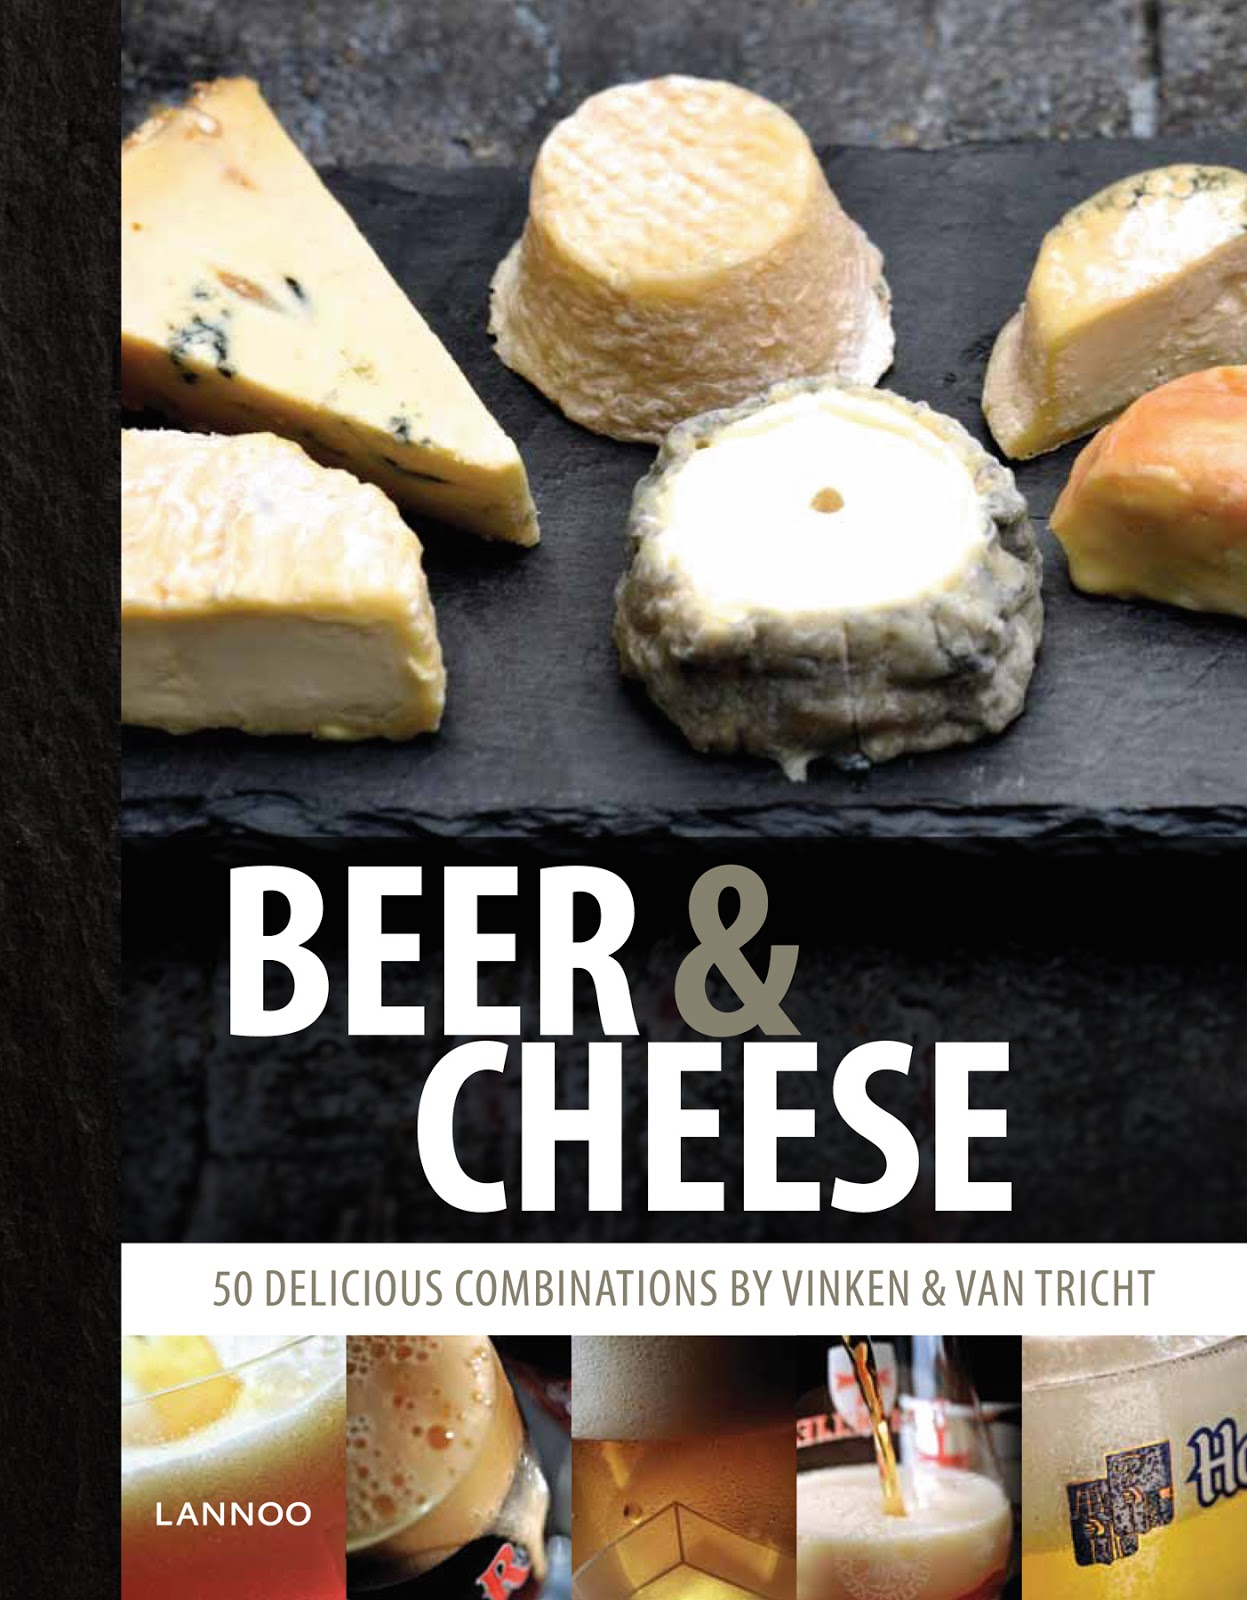 Tyson's Beer Blog: Book Review: Beer & Cheese by Vinken ...